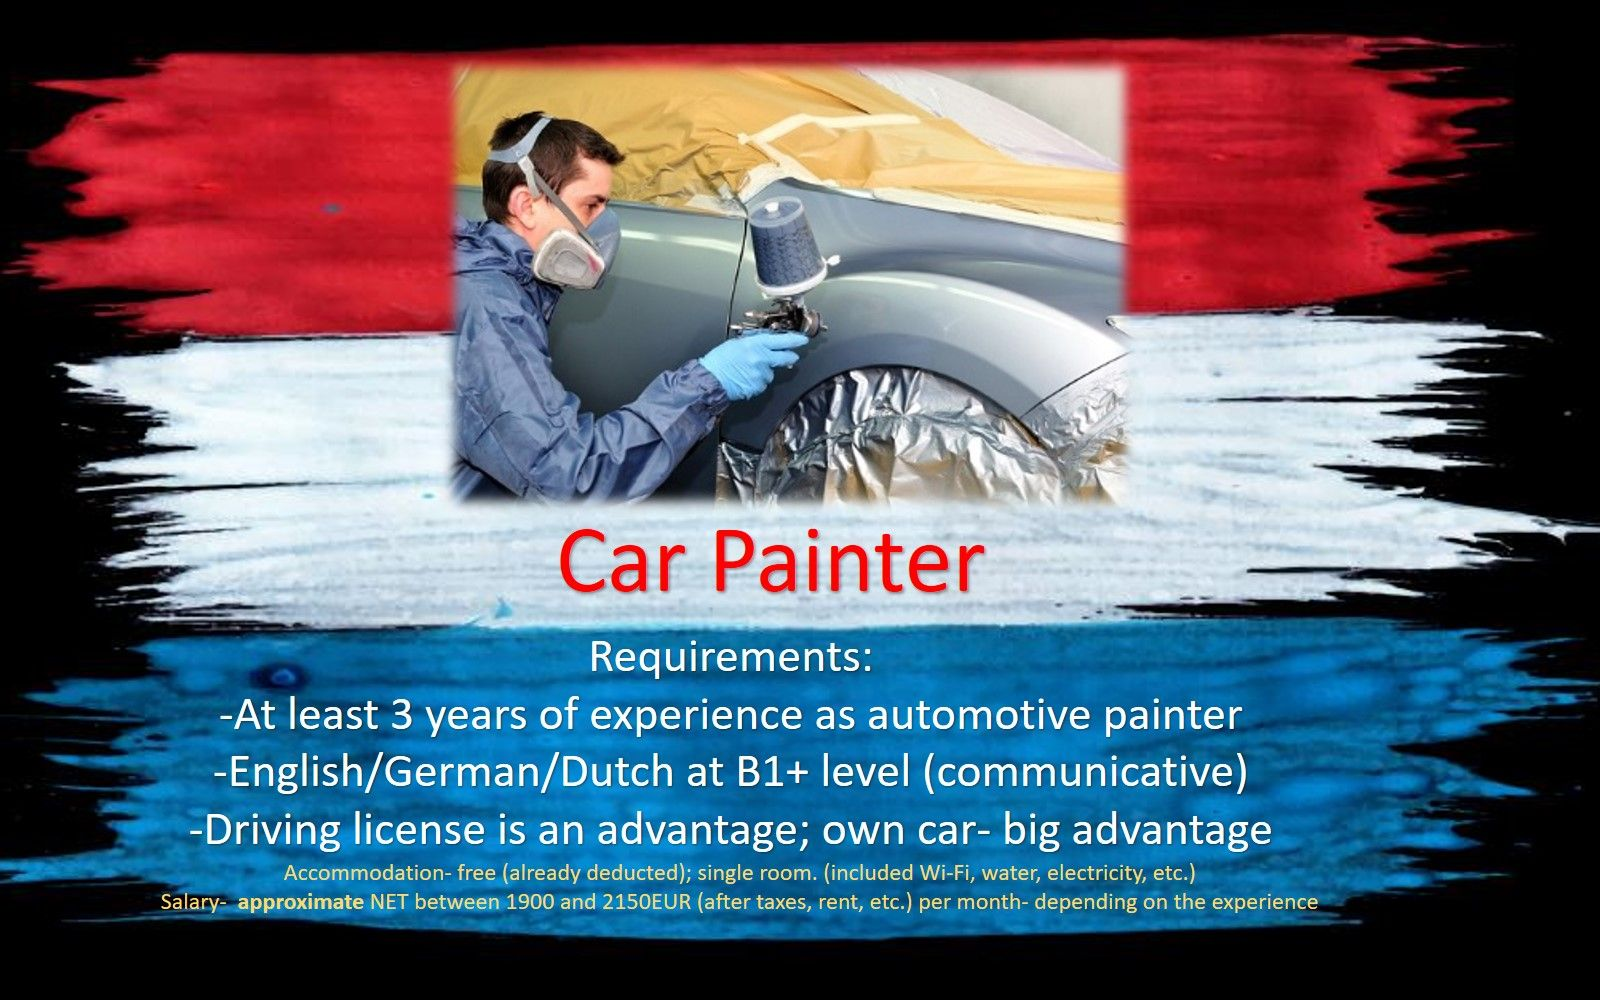 Jobs Netherlands Work Holland Car Automotive painter job work holland the Netherlands Amsterdam, Eindhoven, Rotterdam, Haarlem